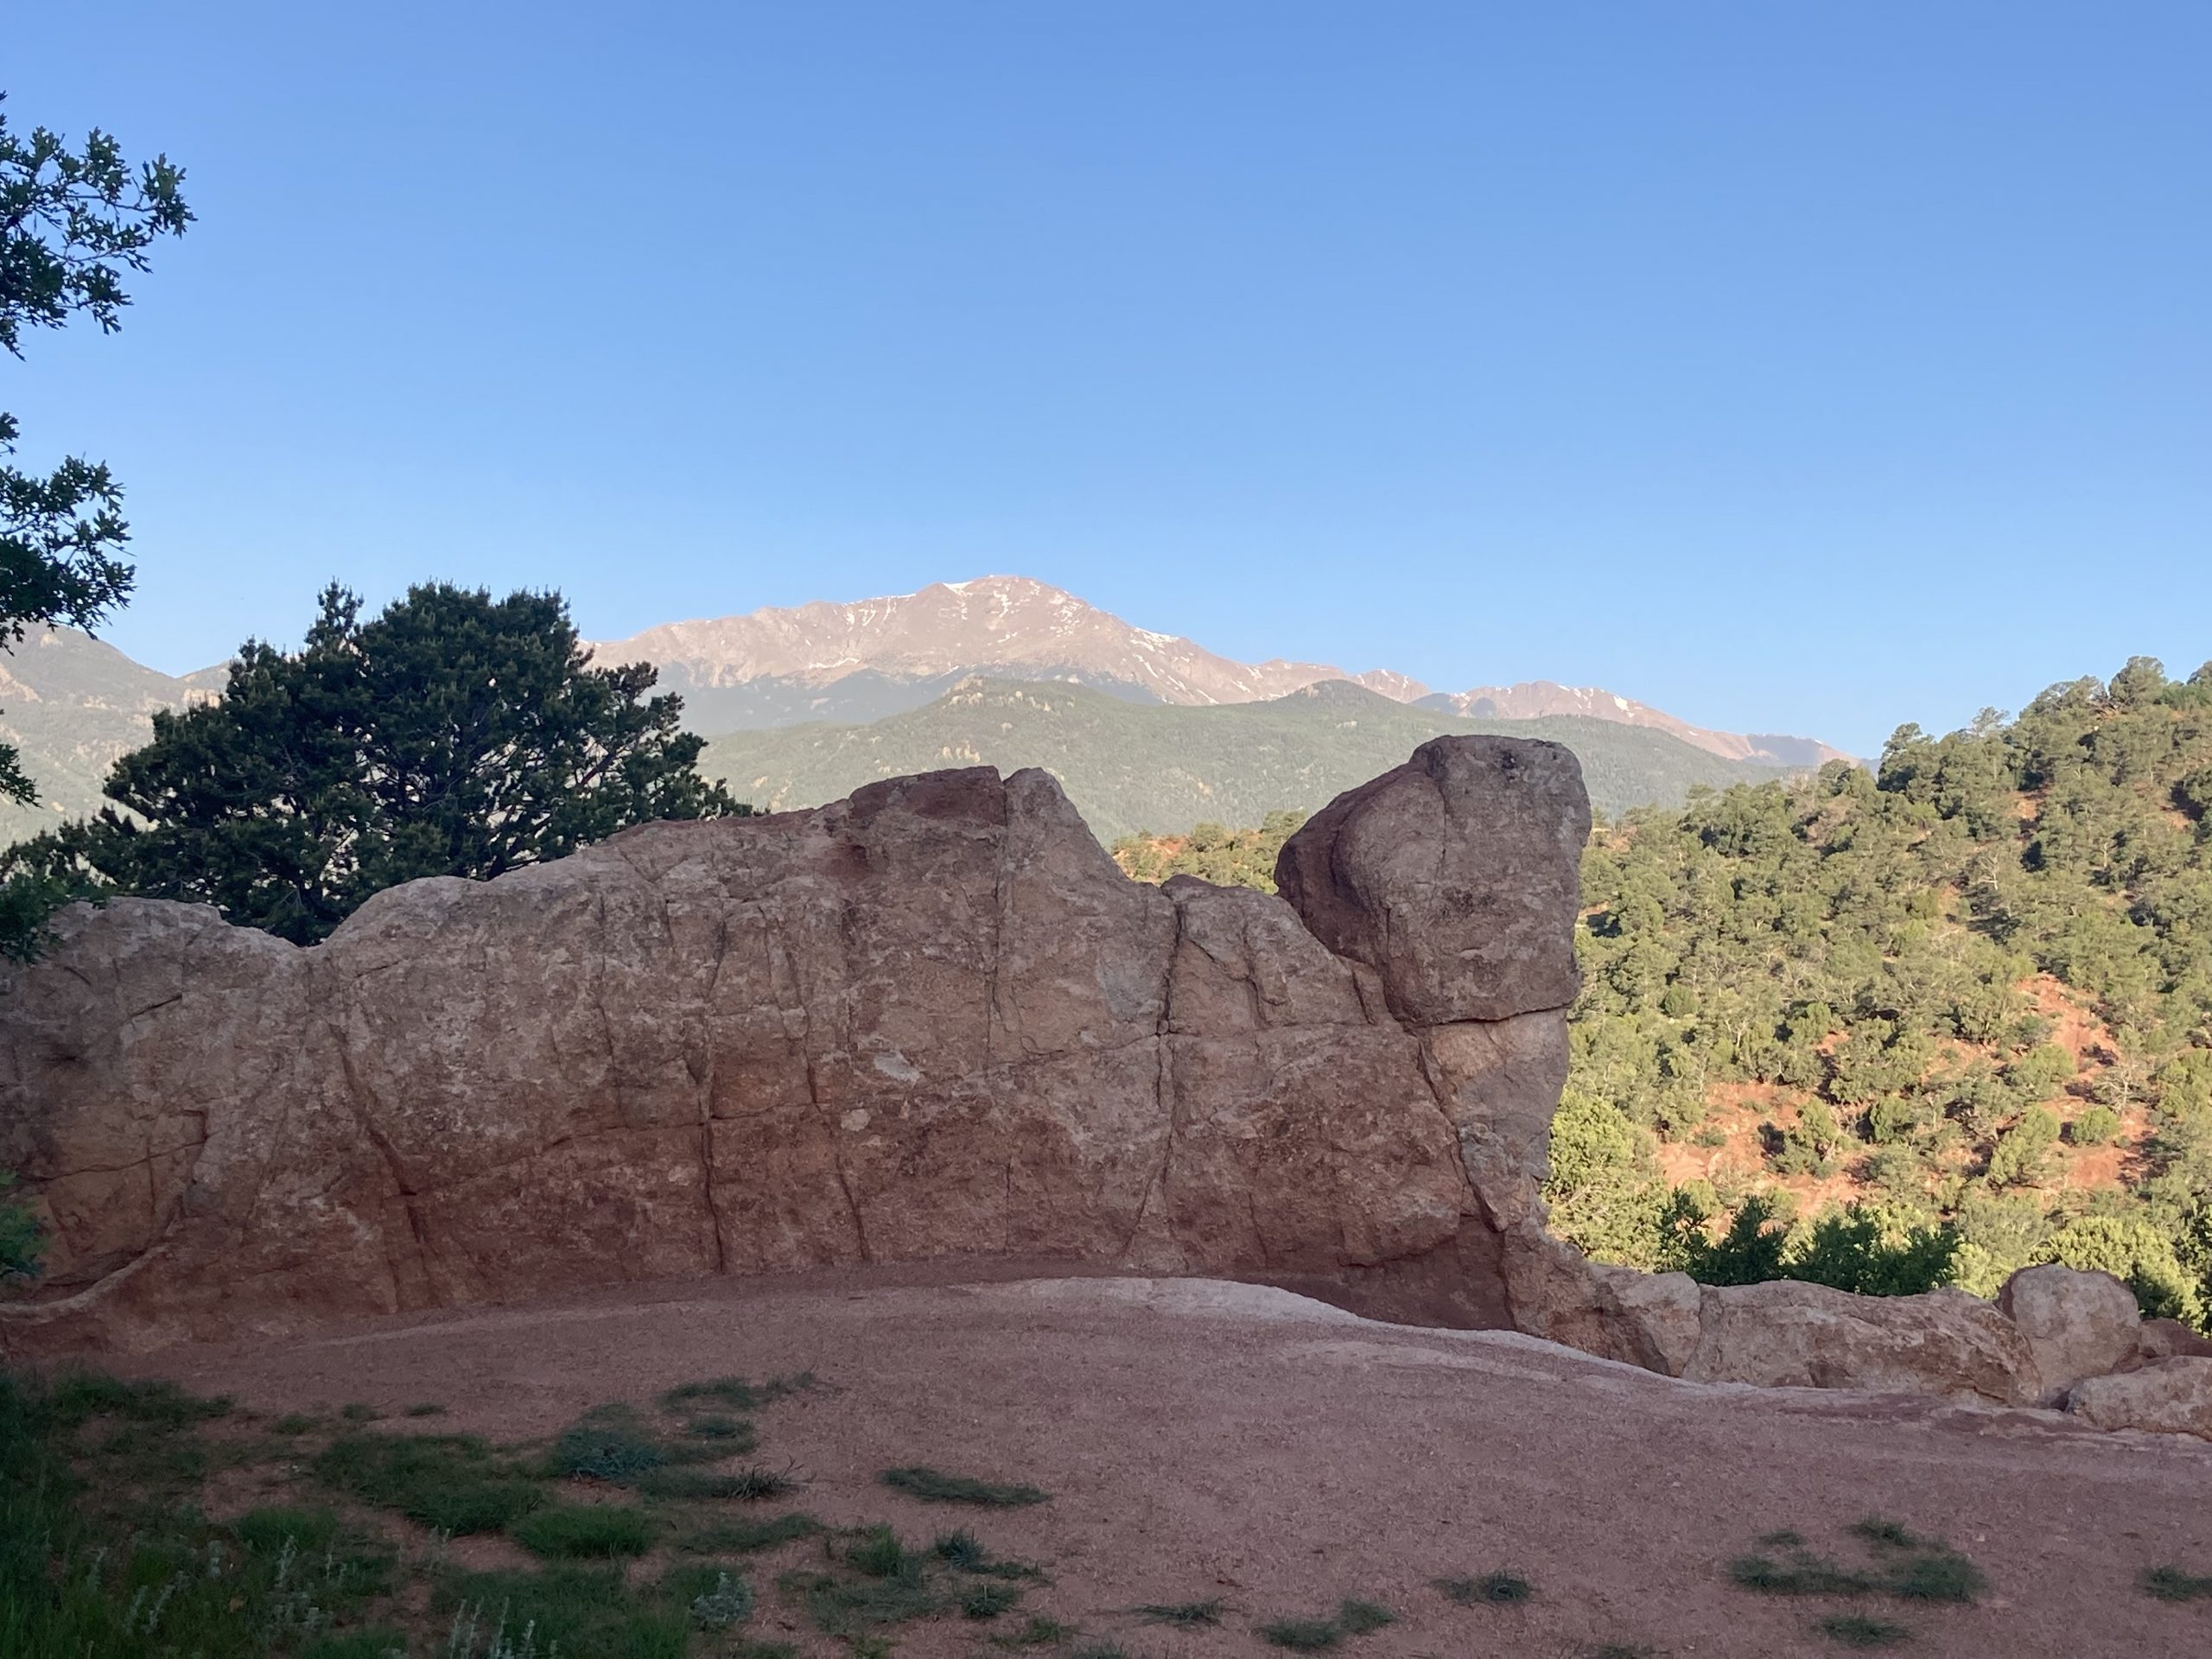 The rock formation in Garden of the Gods that inspired Matt Cavanaugh's tall tale in this week's episode of Peak Past.